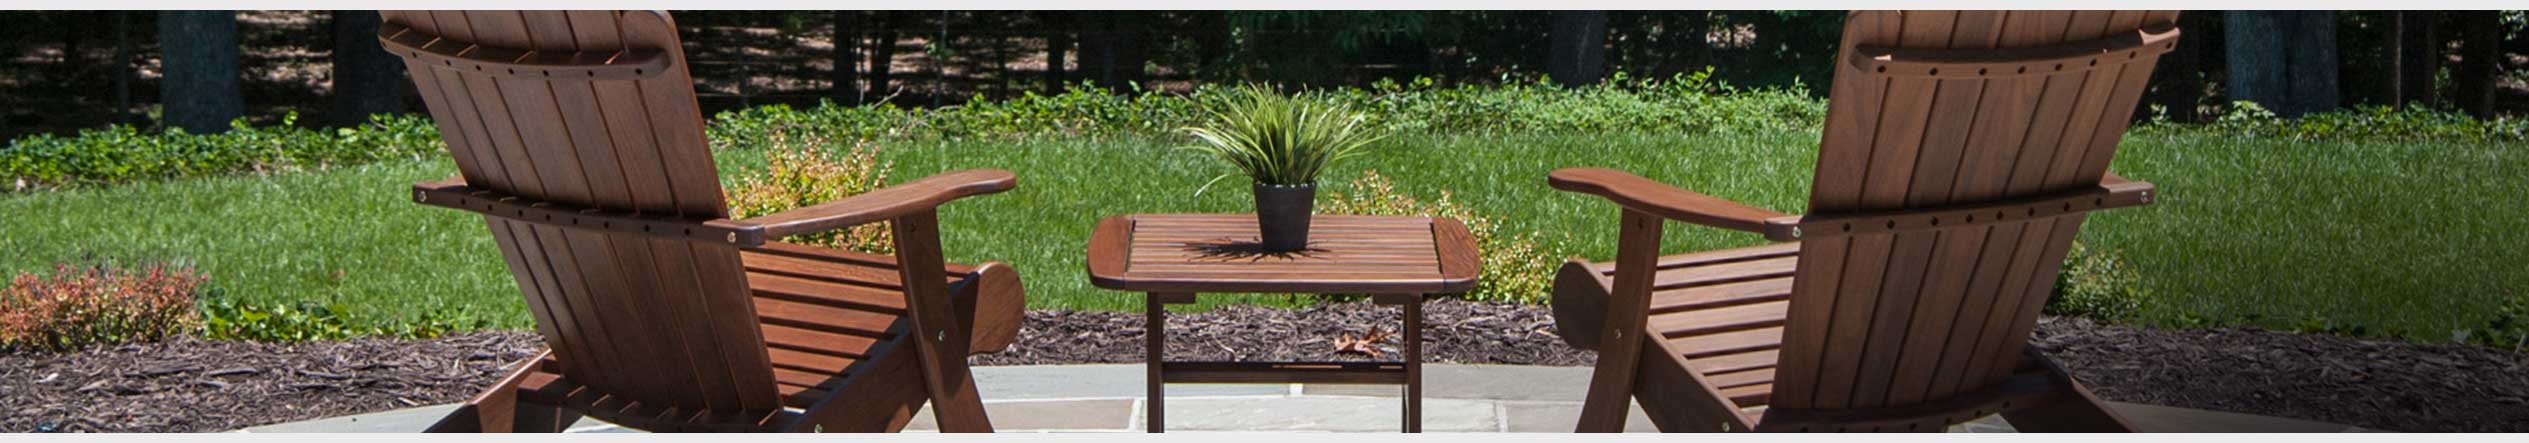 Outdoor Patio & Deck furniture for sale at Jordan's Furniture stores in MA, NH and RI